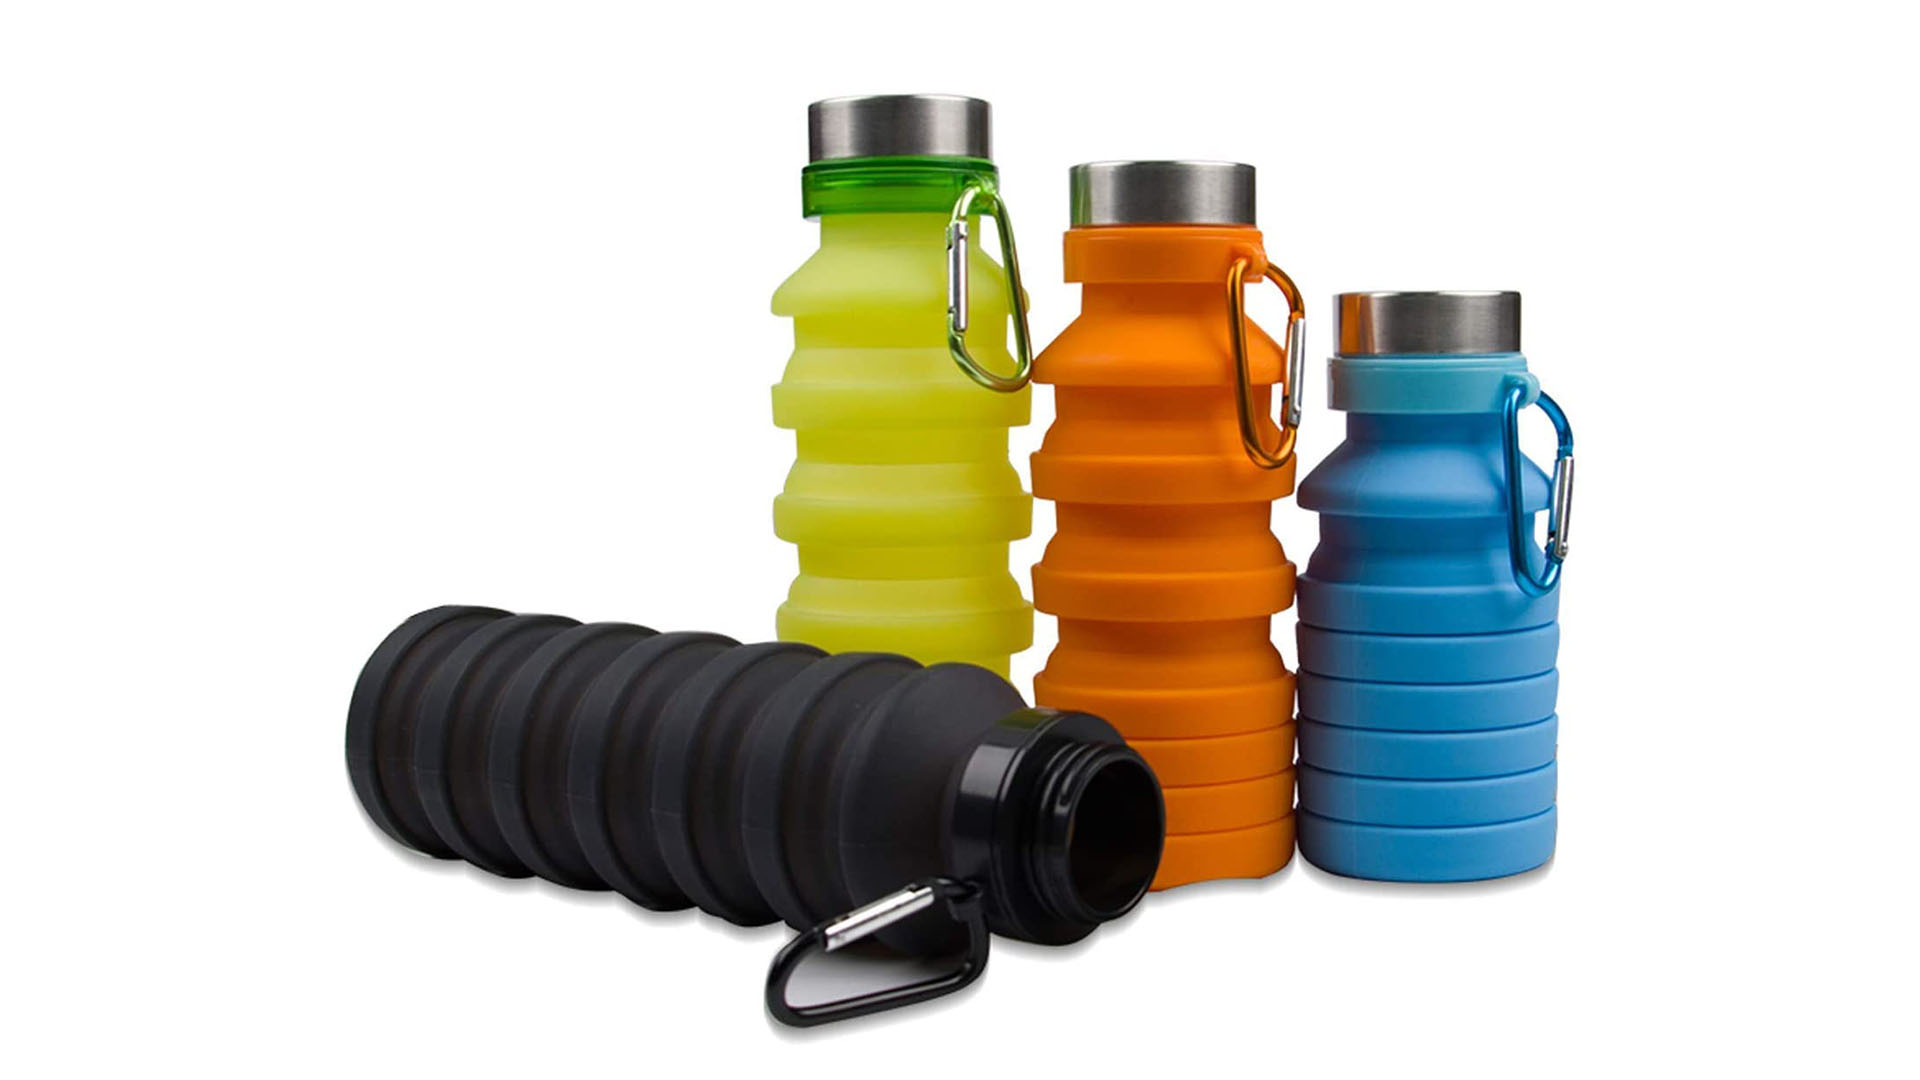 Outdoor Sports Travel Collapsible Silicone Water Bottle Leak Proof Silicone Drink Bottle Folding Reusable for Traveler Walking Camping Hiking DH-Silicone